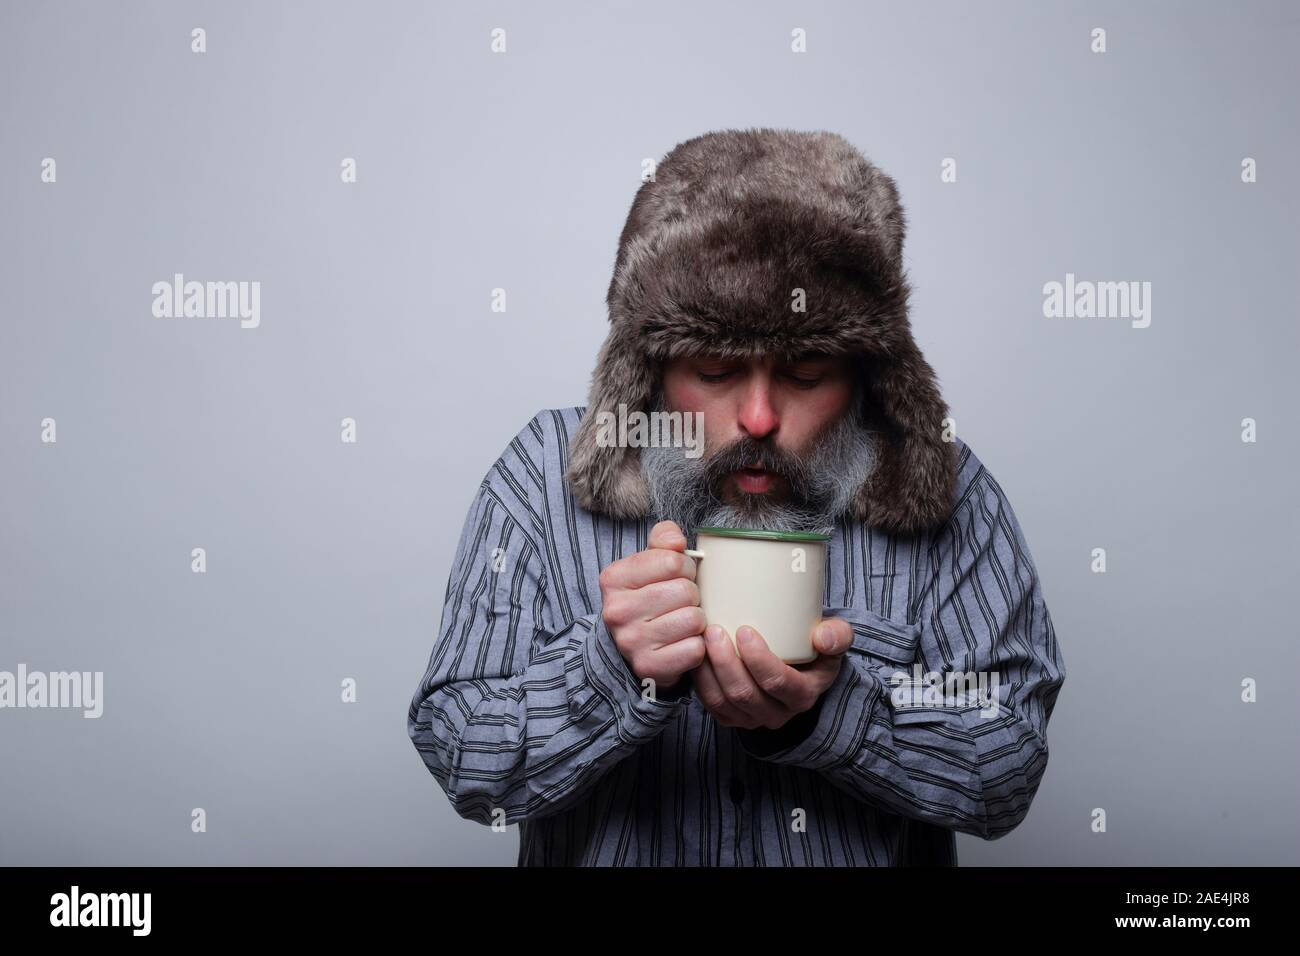 Flu sick man with pajamas and with a cap blowing a cup of hot tea on a gray background. Health concept. Stock Photo